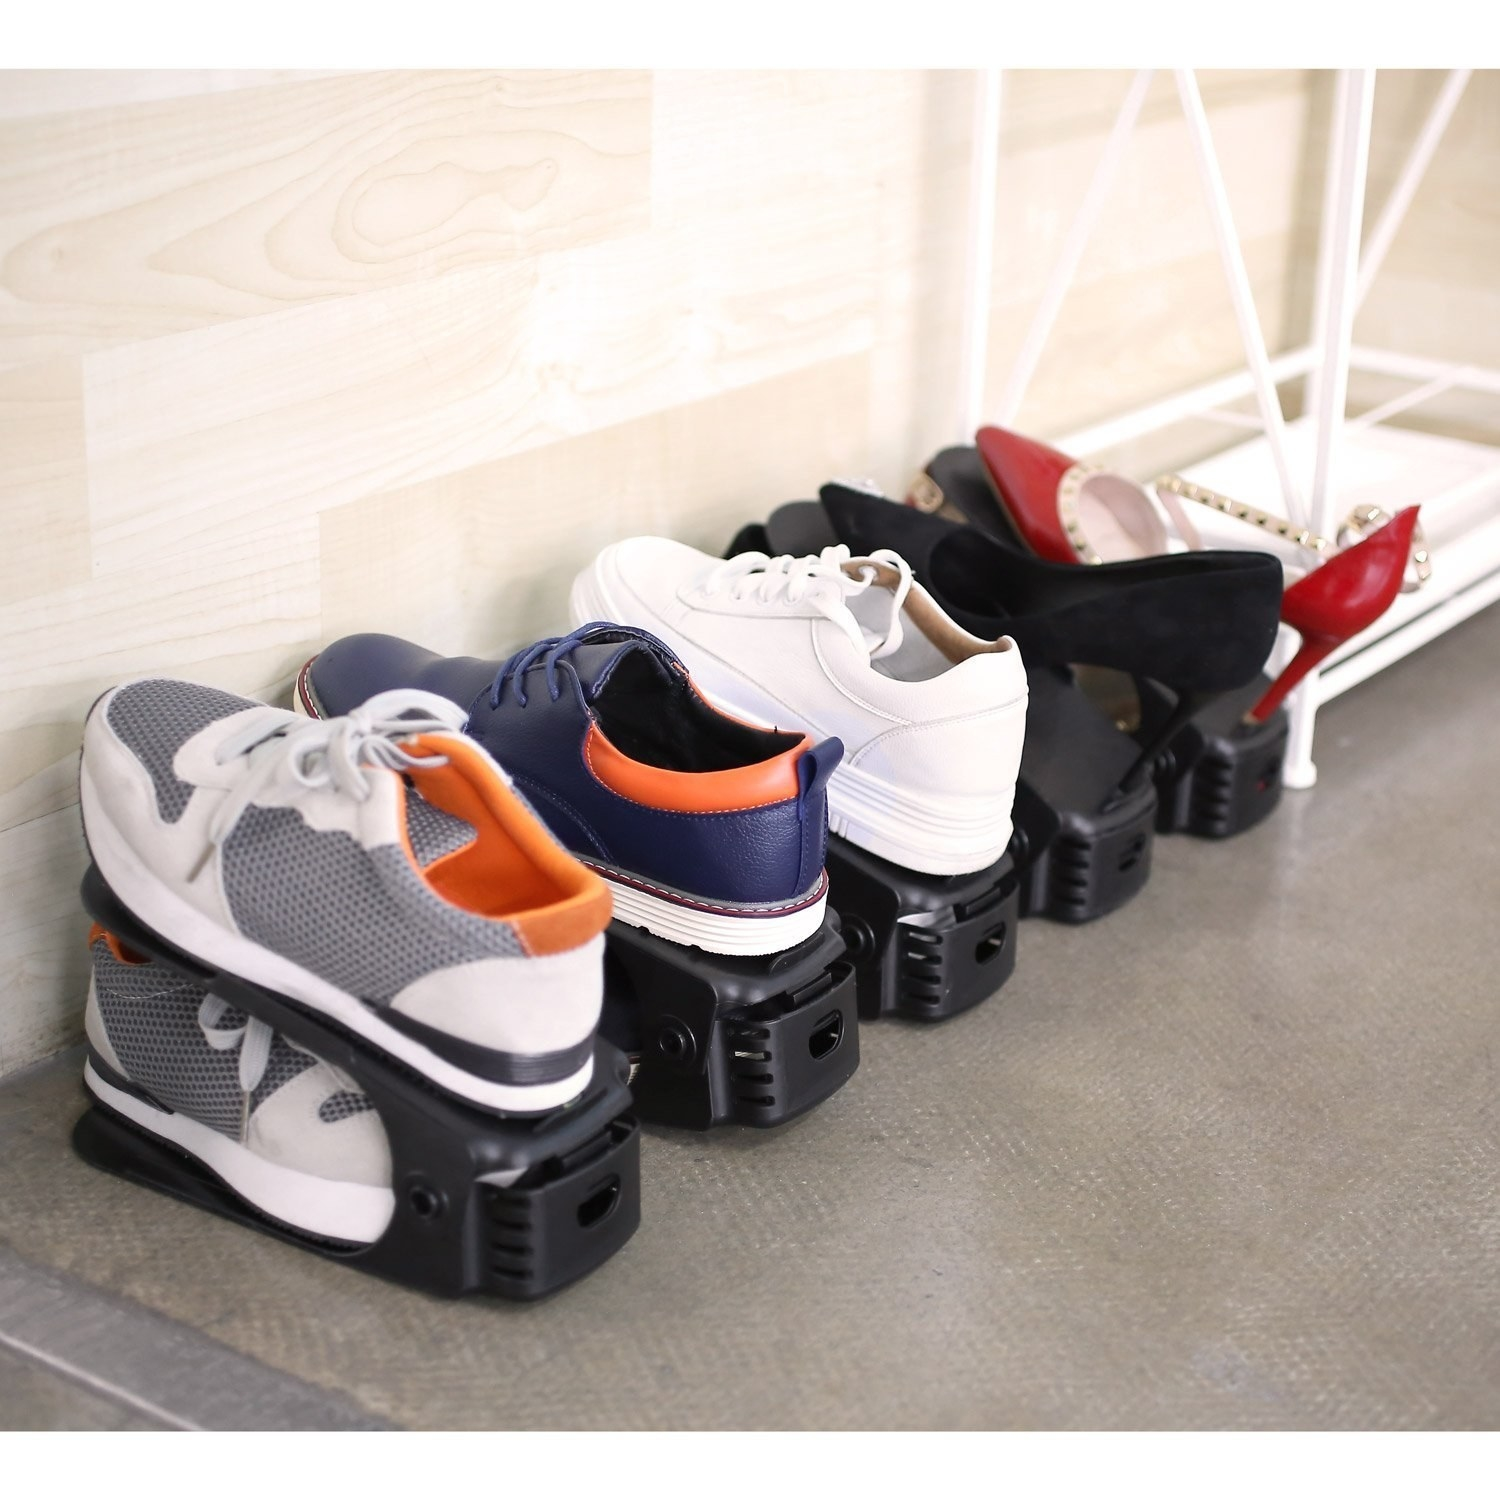 The shoe slots are designed to place one shoe on top of the other